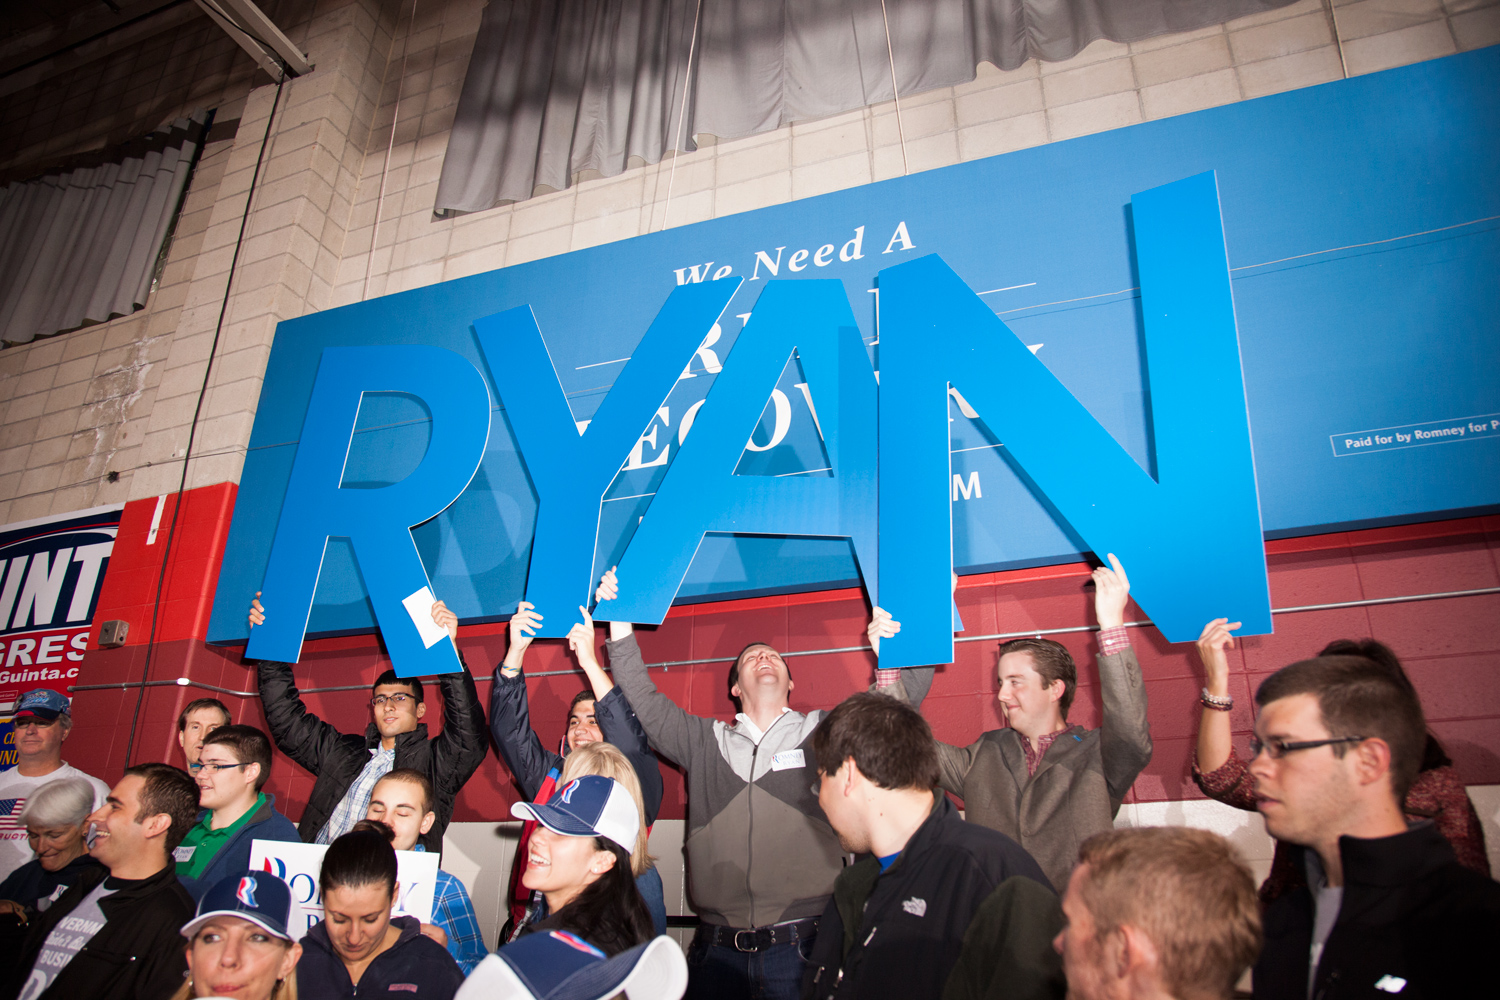 Paul Ryan supporters rehearse for Ryan's entry at the  Earn It  Rally in Derry, N.H. Sept. 29, 2012.